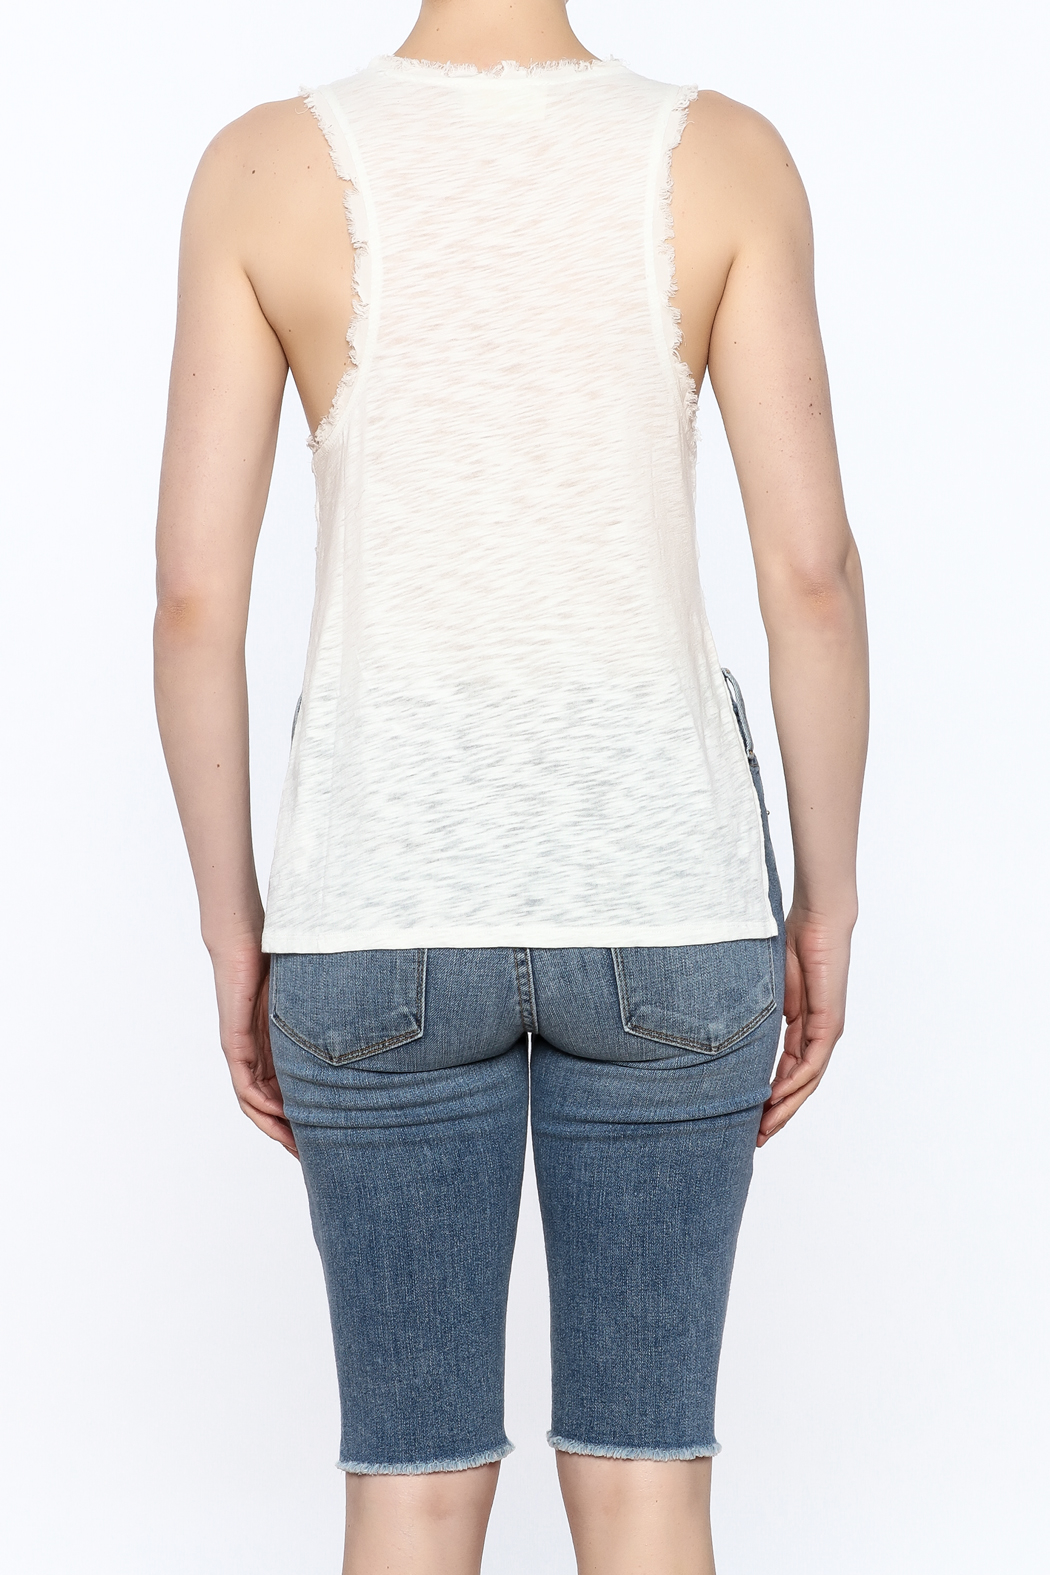 storia Frayed White Tank - Back Cropped Image